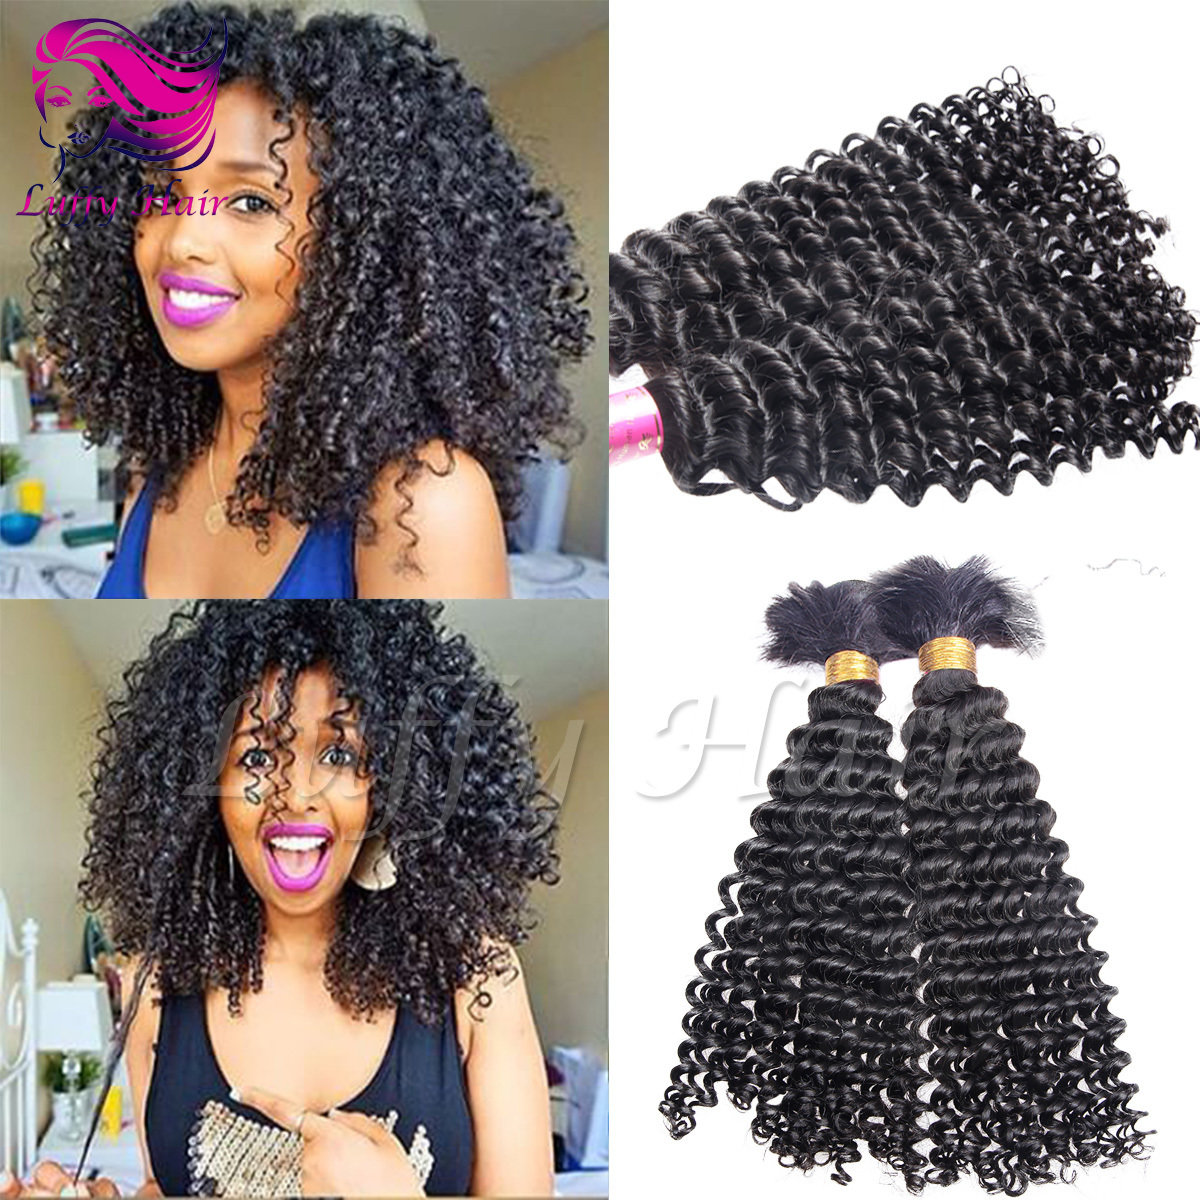 8A Virgin Human Hair Kinky Curly Braiding Hair Bulk - KBL010